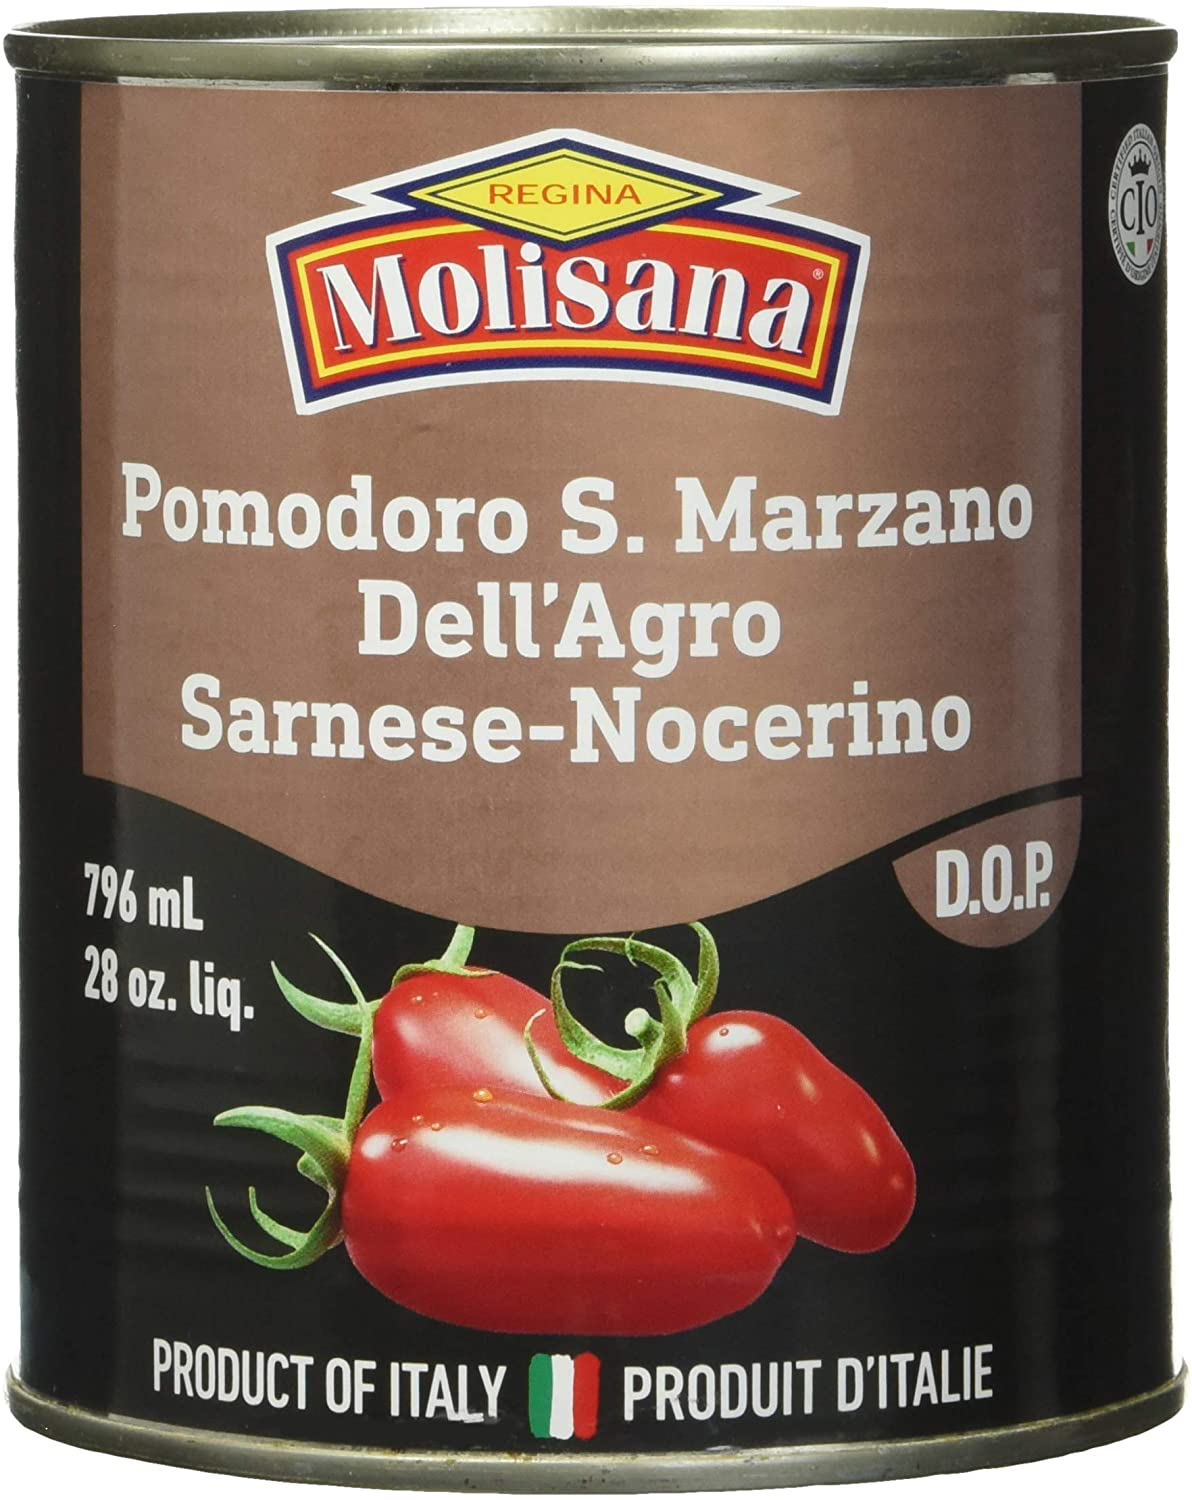 San Marzano tomatoes with DOP seal.